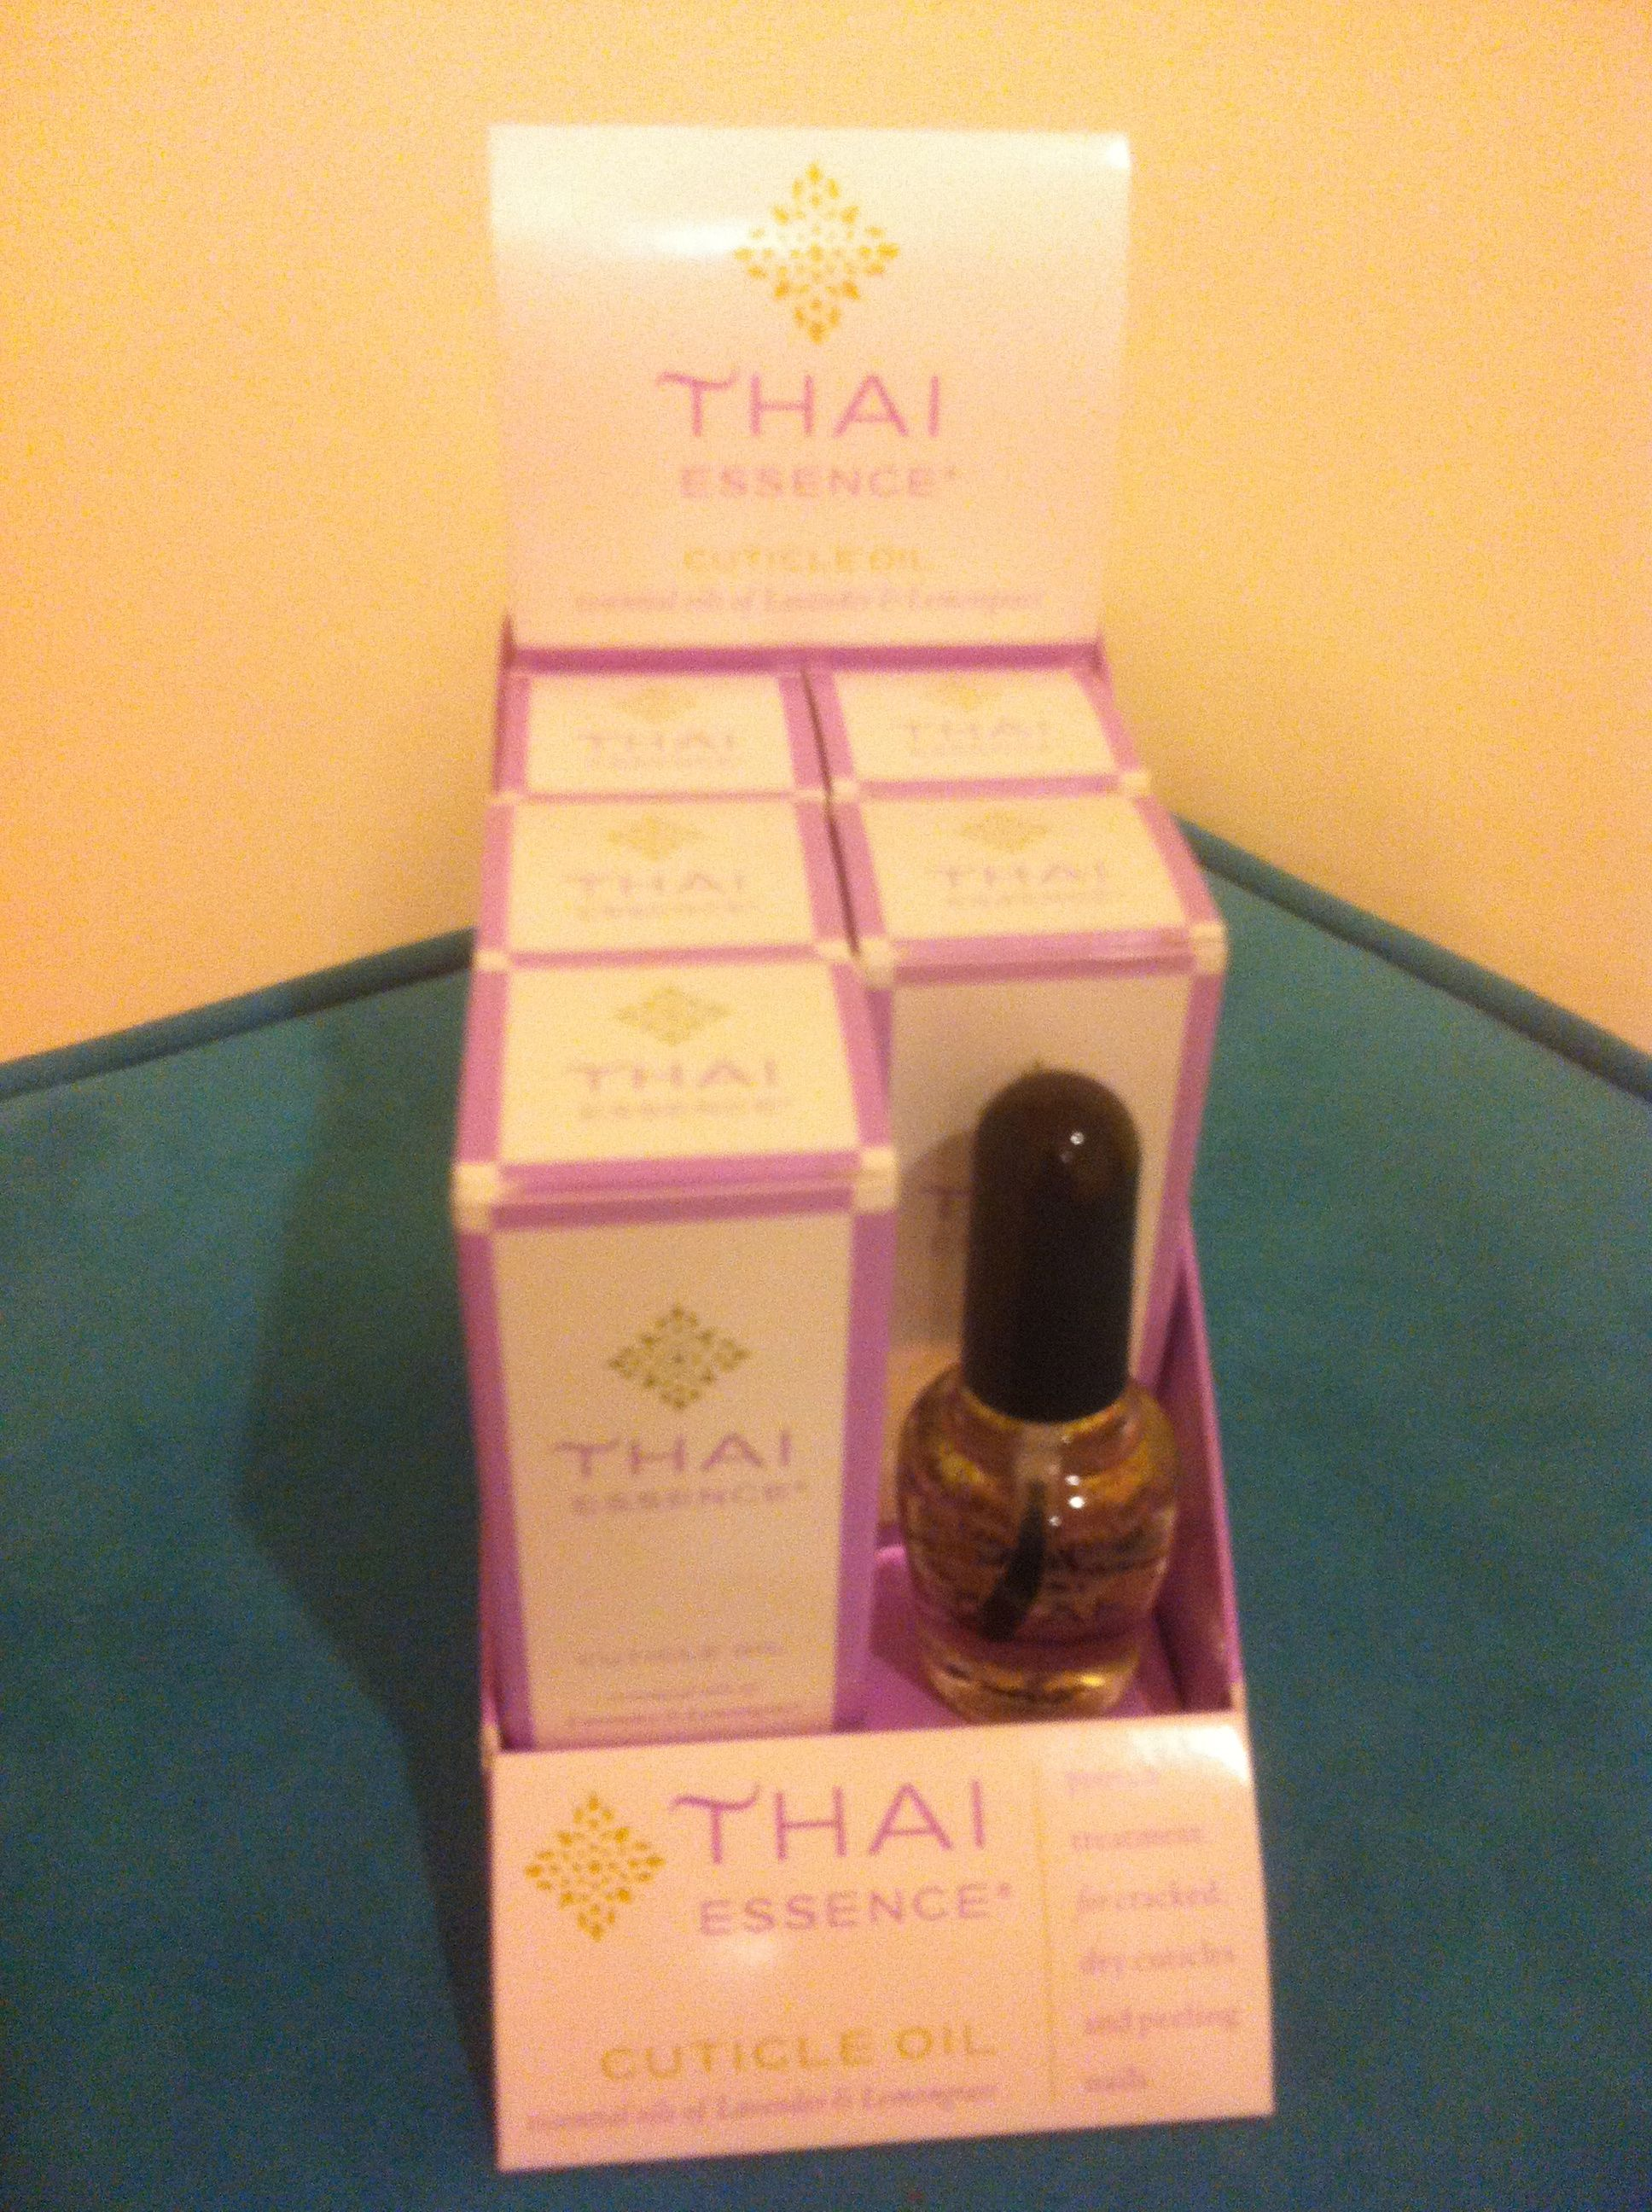 Scott Haken with Nail Magic donated a 12 pack of Thai Essence ...